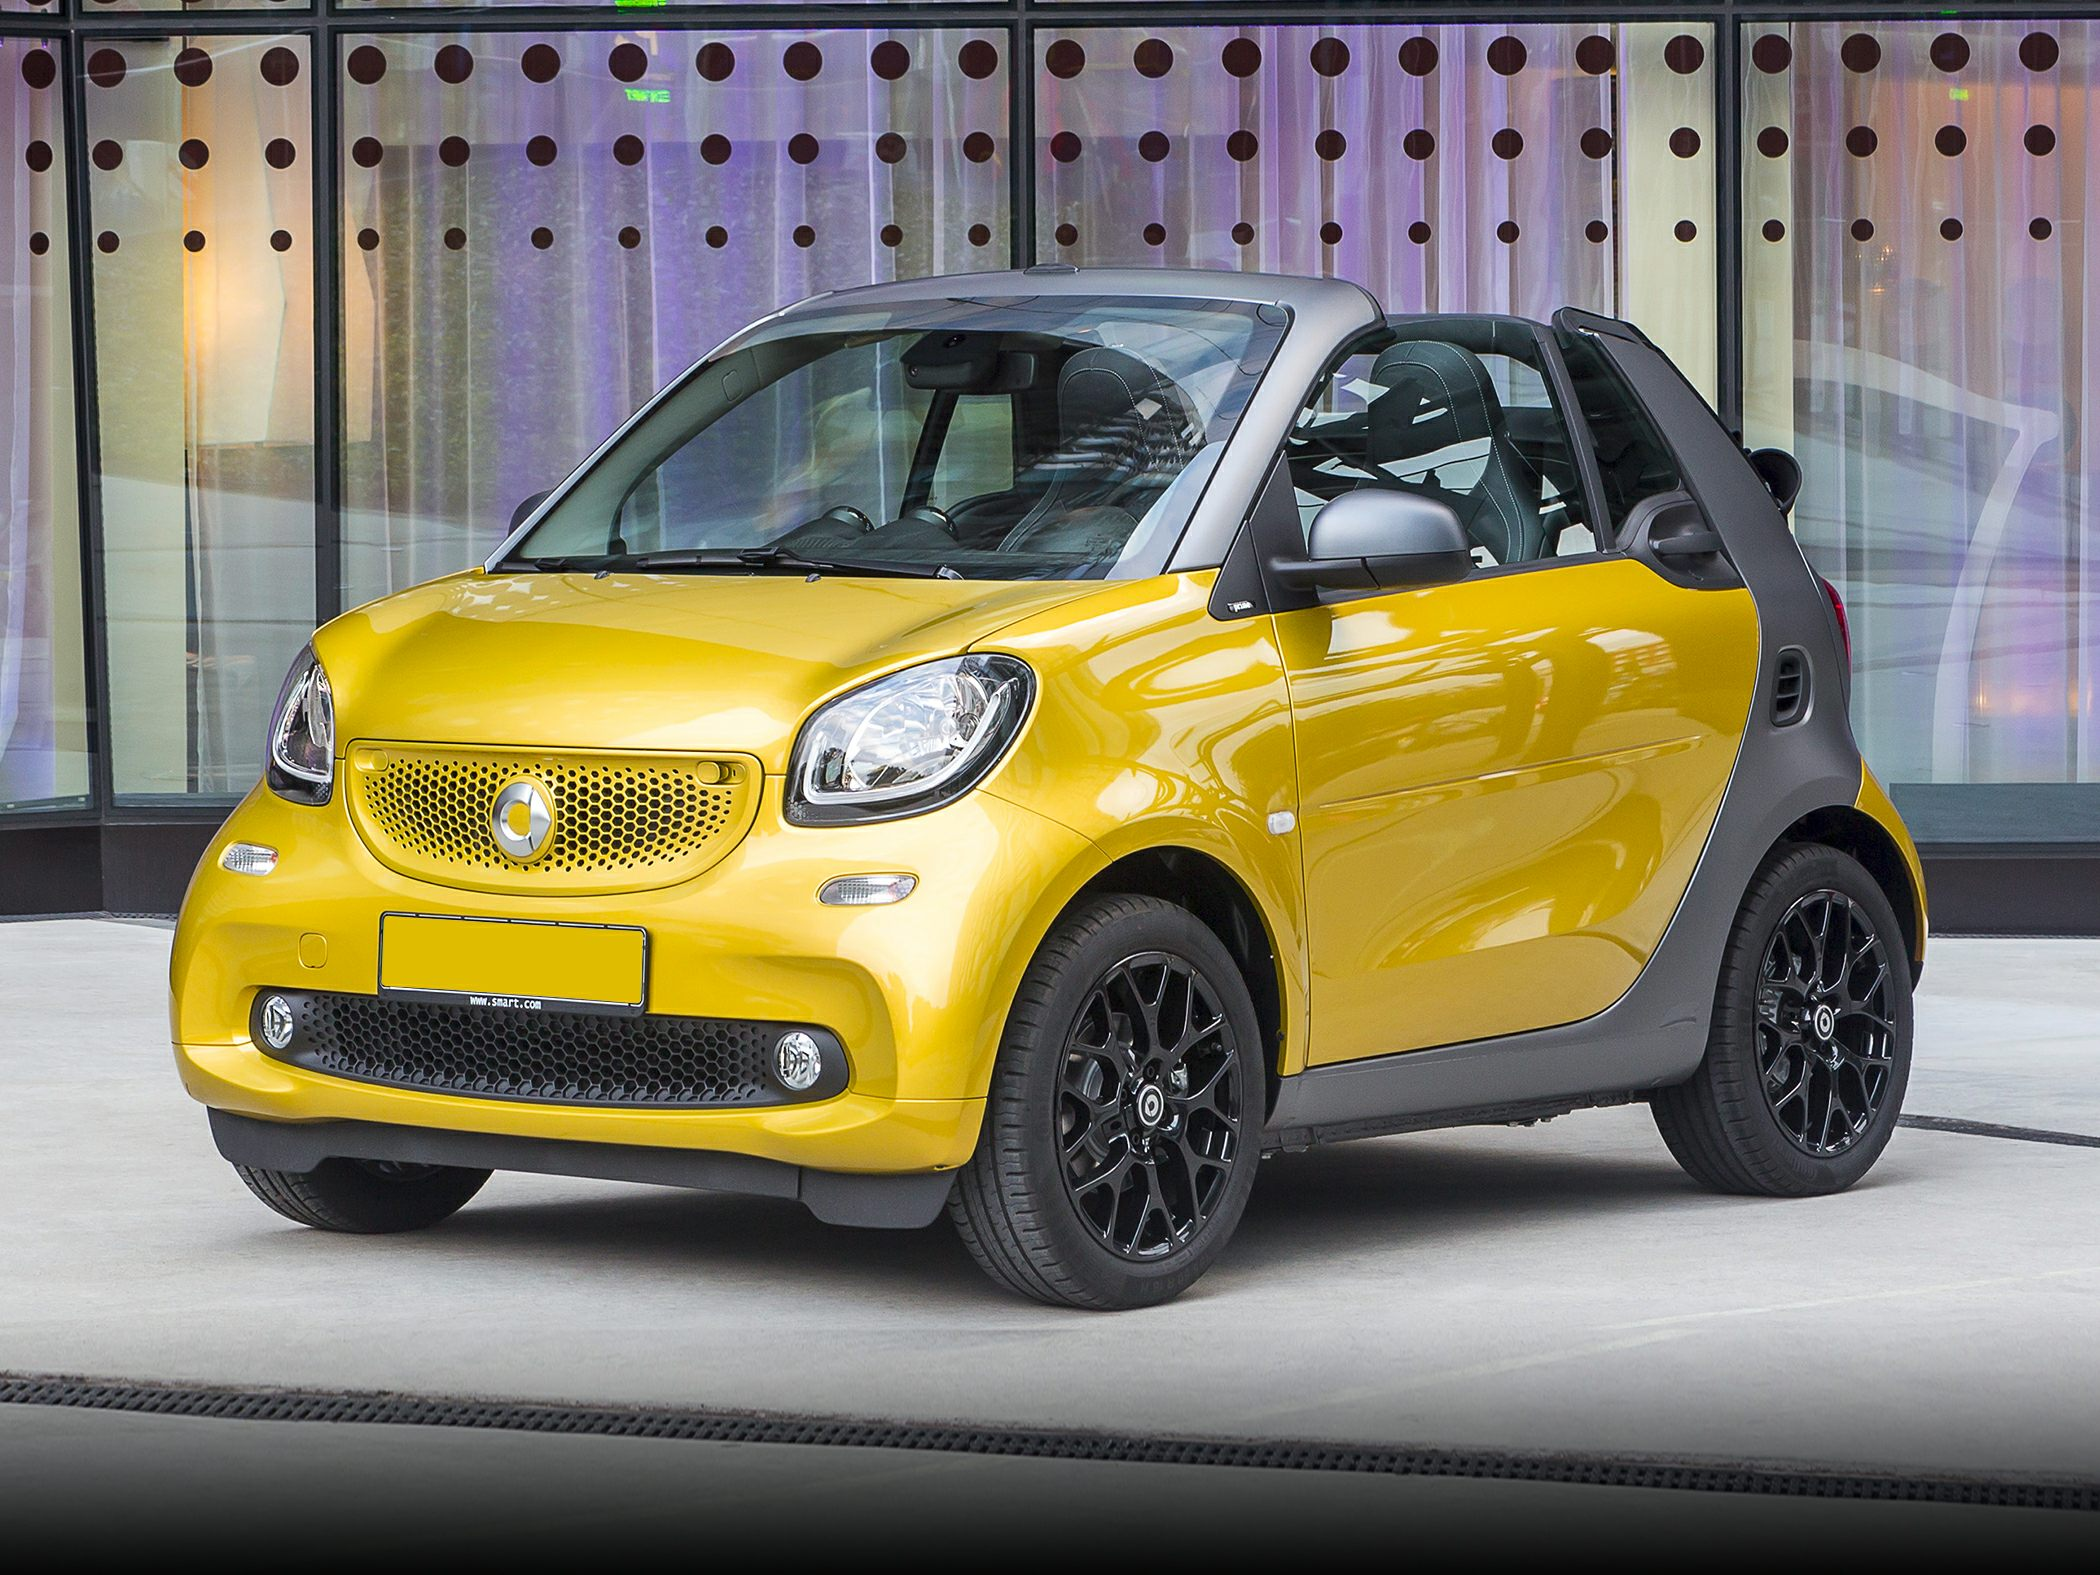 2017 smart fortwo deals prices incentives leases overview carsdirect. Black Bedroom Furniture Sets. Home Design Ideas